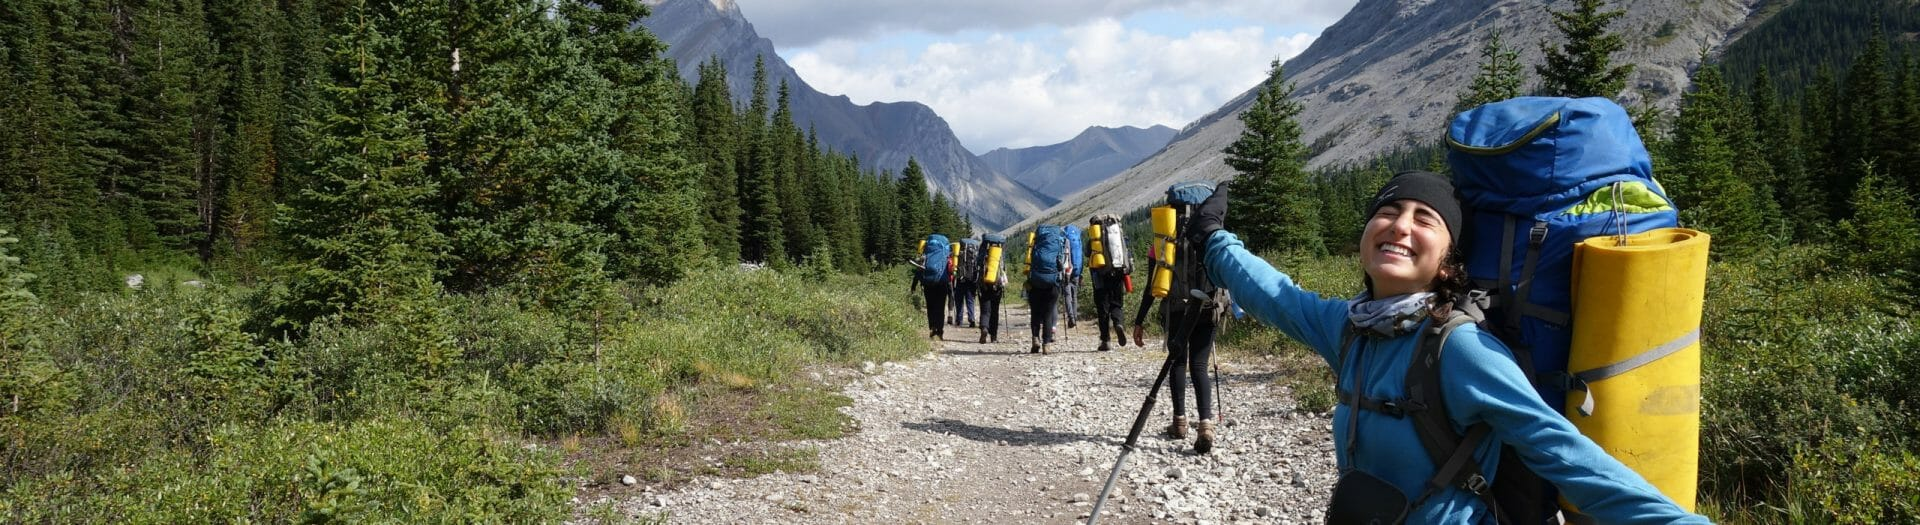 Donate to Outward Bound Canada